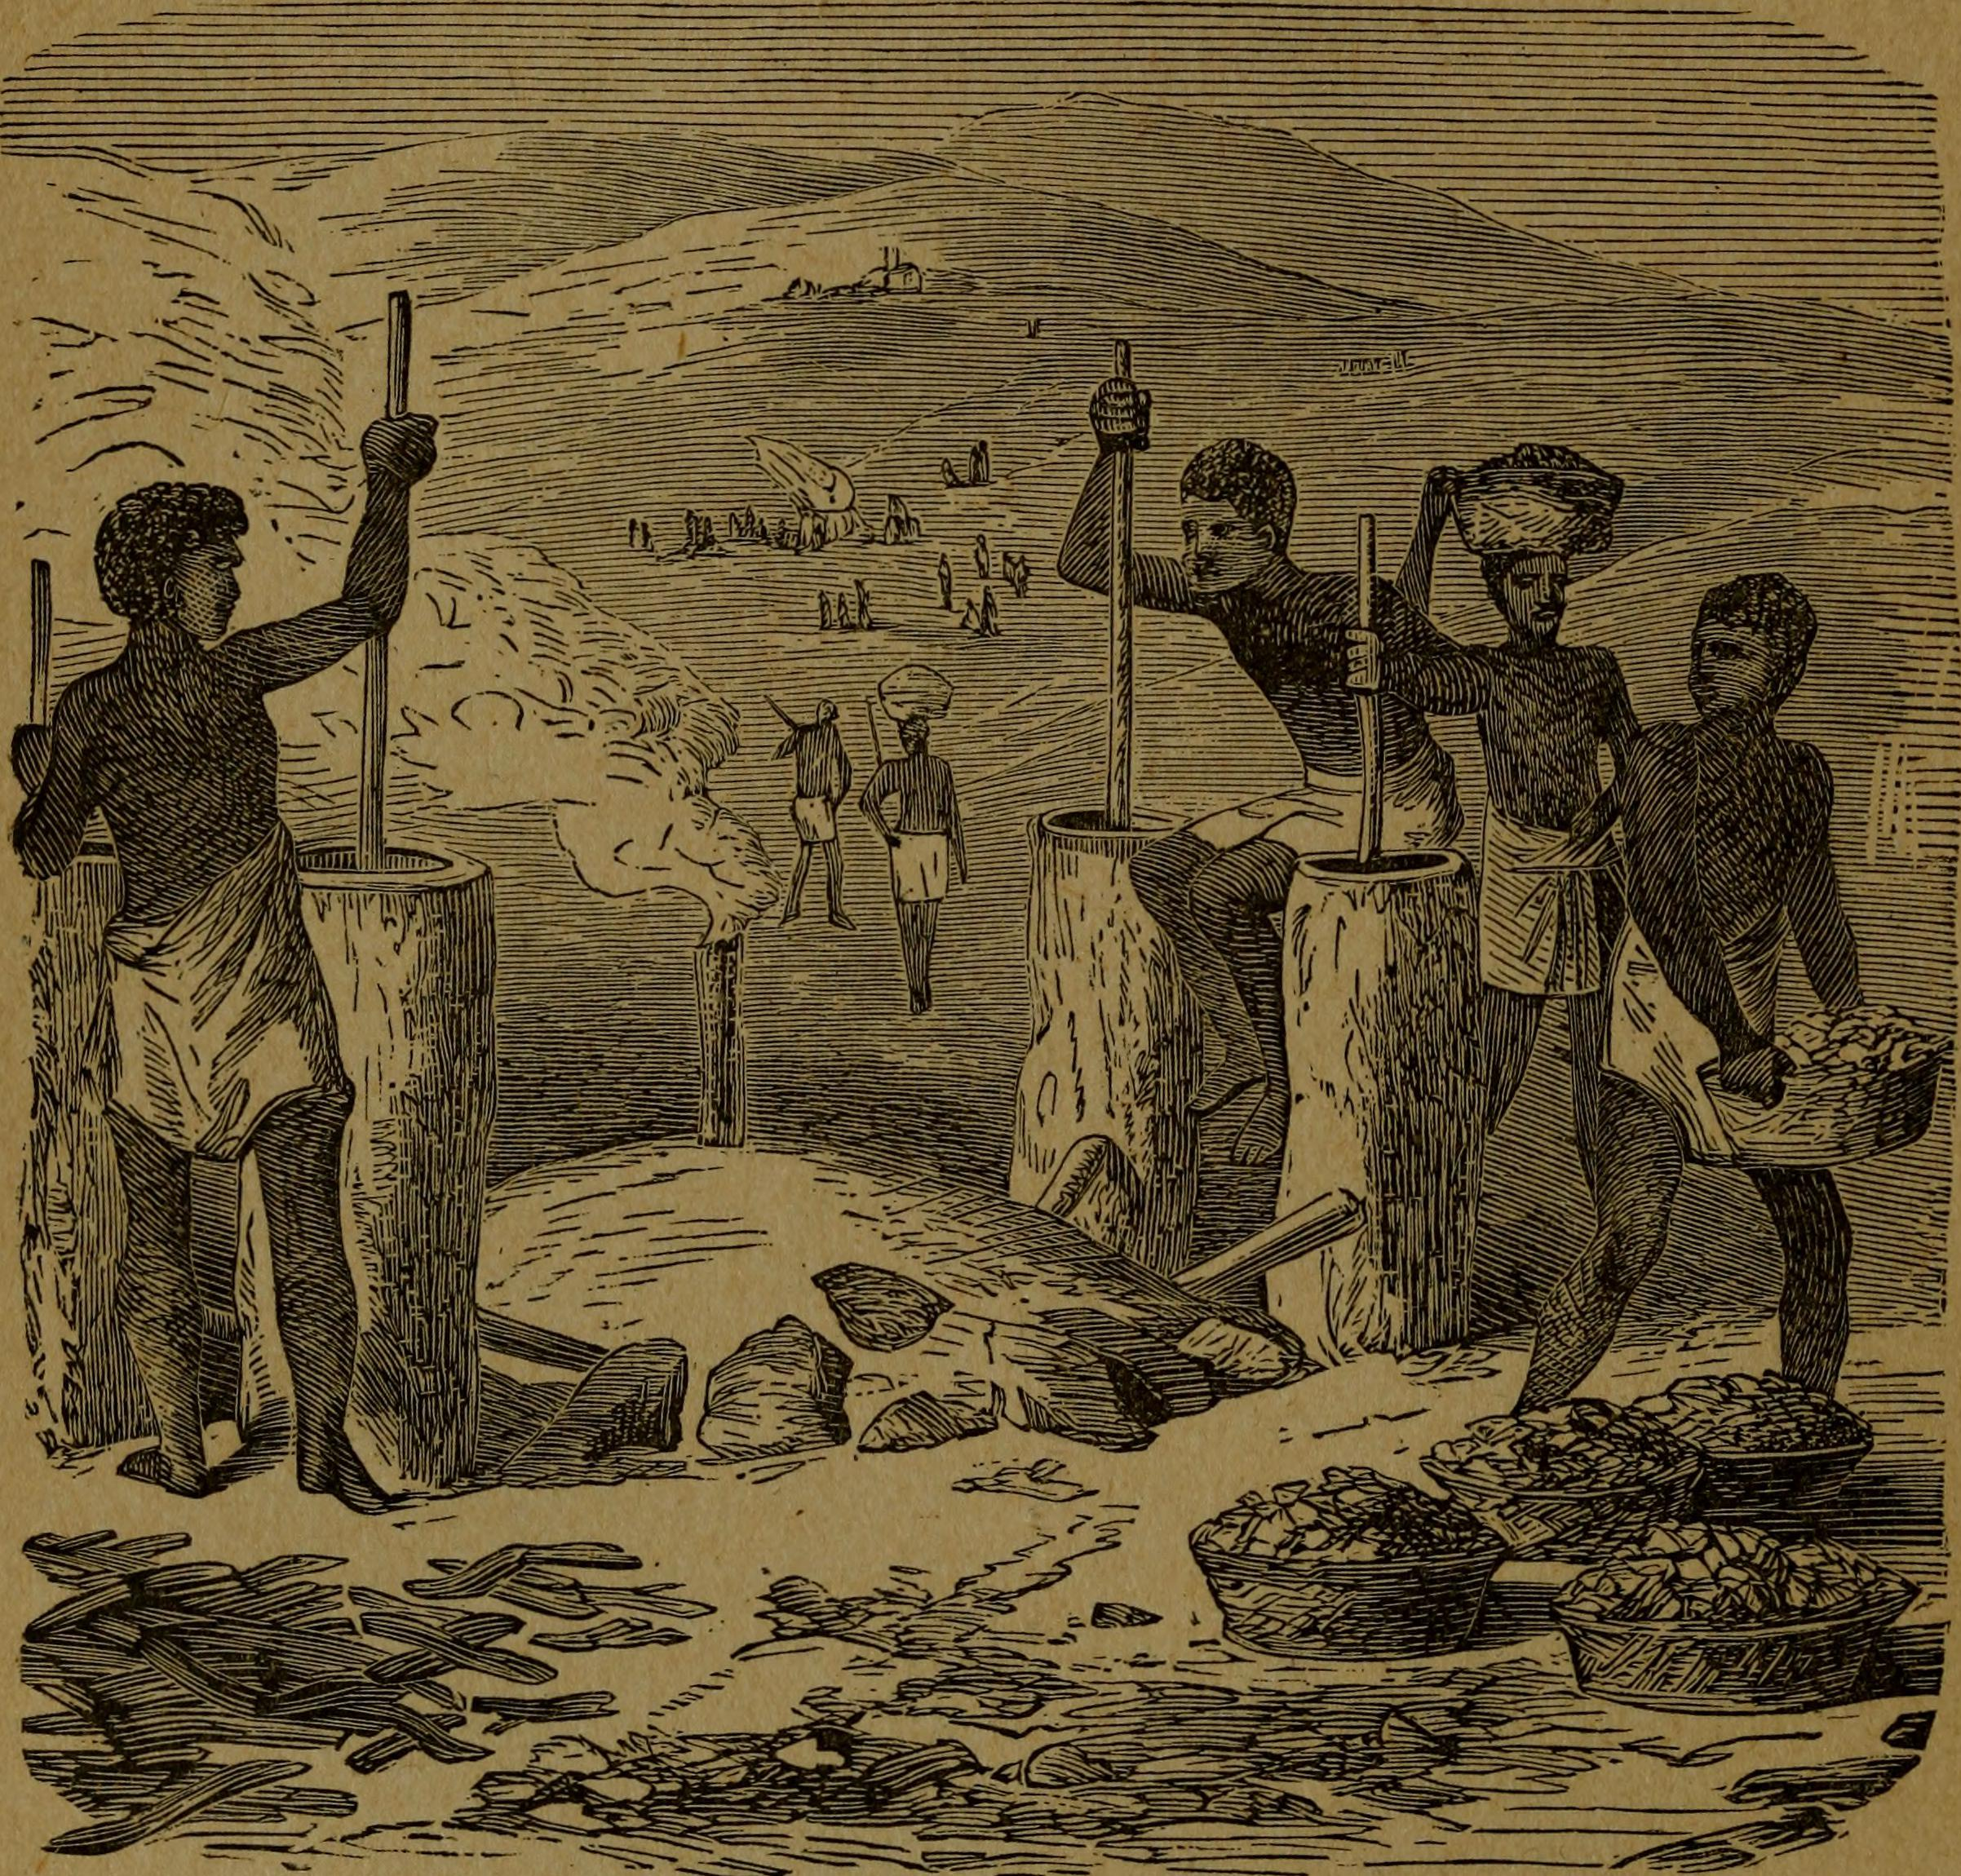 an examination of the famous explorers of africa Europe & africa in the 19th century by jim jones this course begins with an examination of european and african societies in the 19th century in order to determine why the limited information brought back to europe by explorers like mungo park and henry morton stanley made.